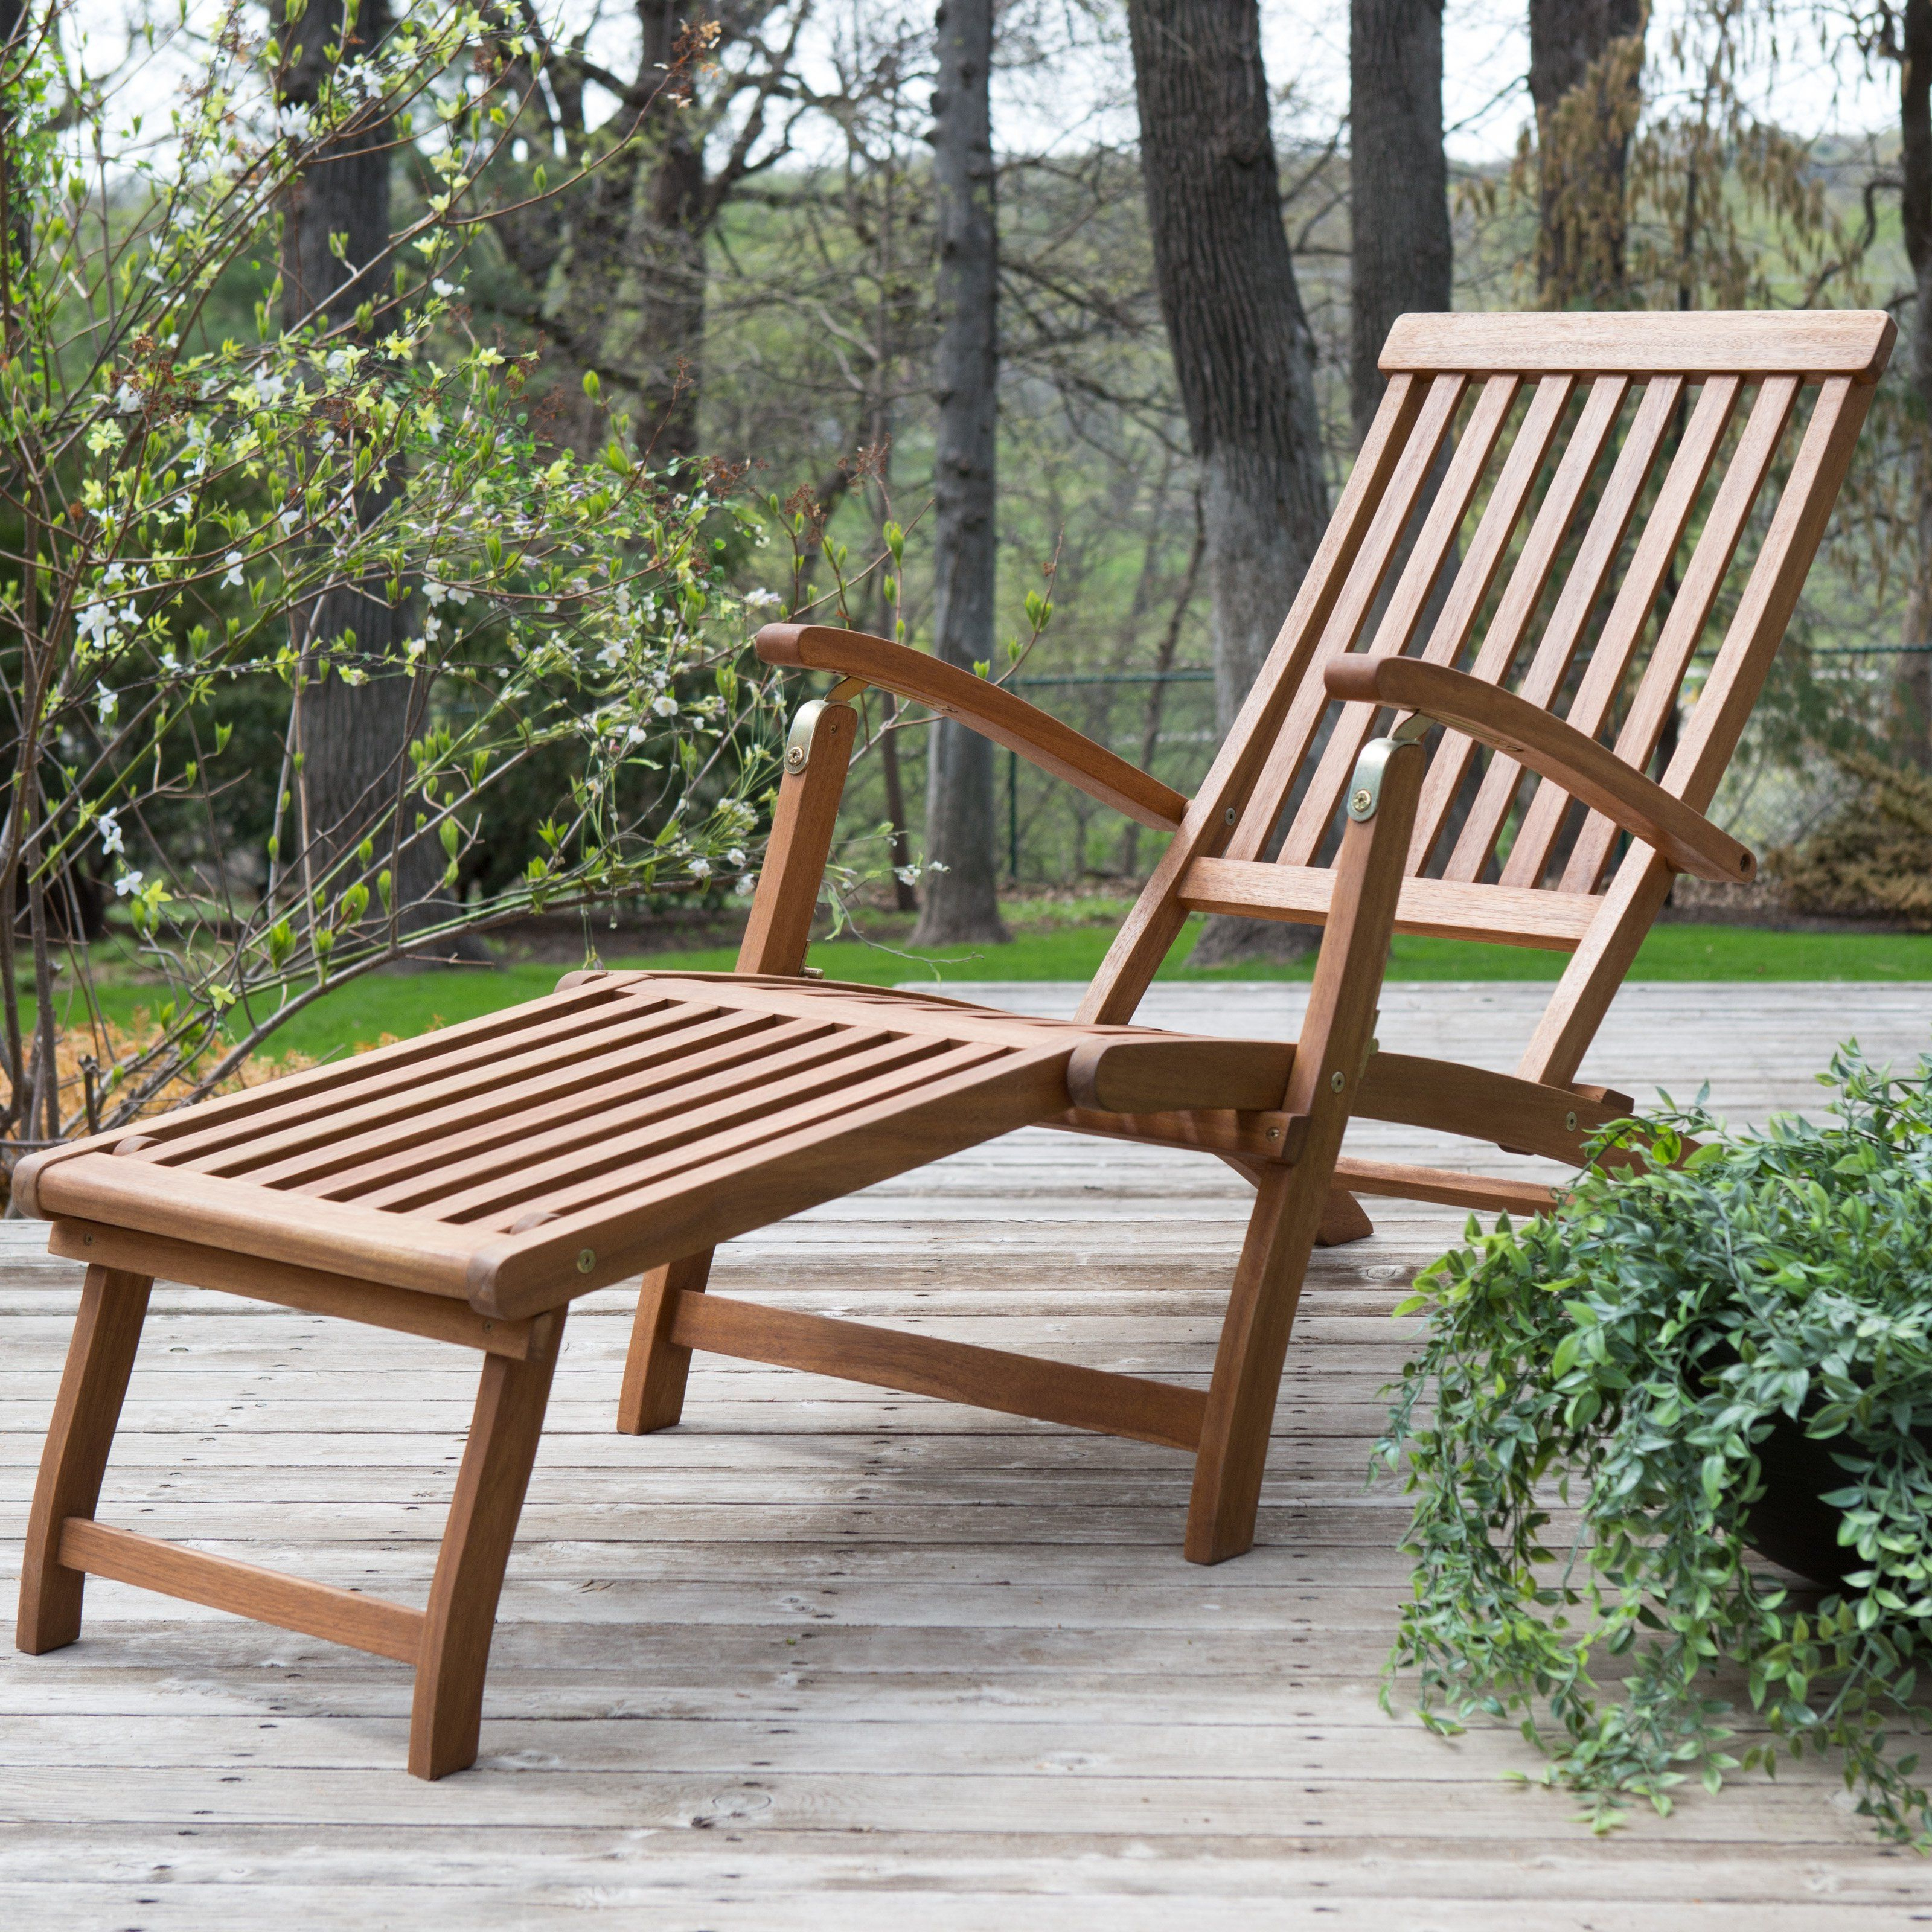 Current $130 Coral Coast Dorado Acacia Steamer Deck Lounge Chair Within Outdoor Rustic Acacia Wood Chaise Lounges With Wicker Seats (View 6 of 25)